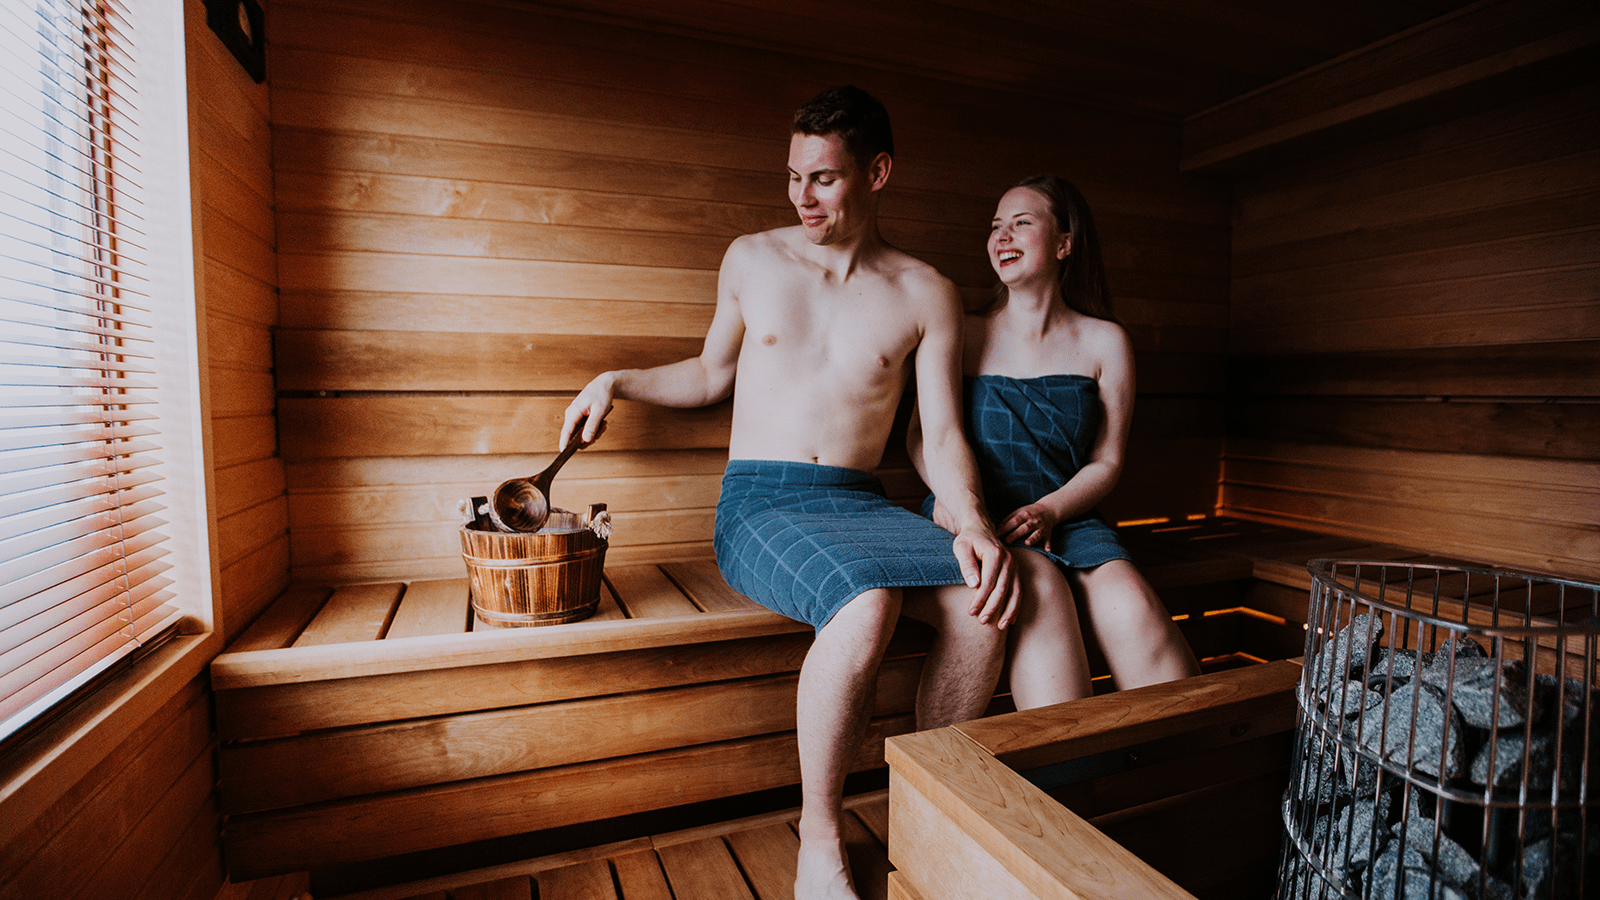 Two persons sitting in sauna